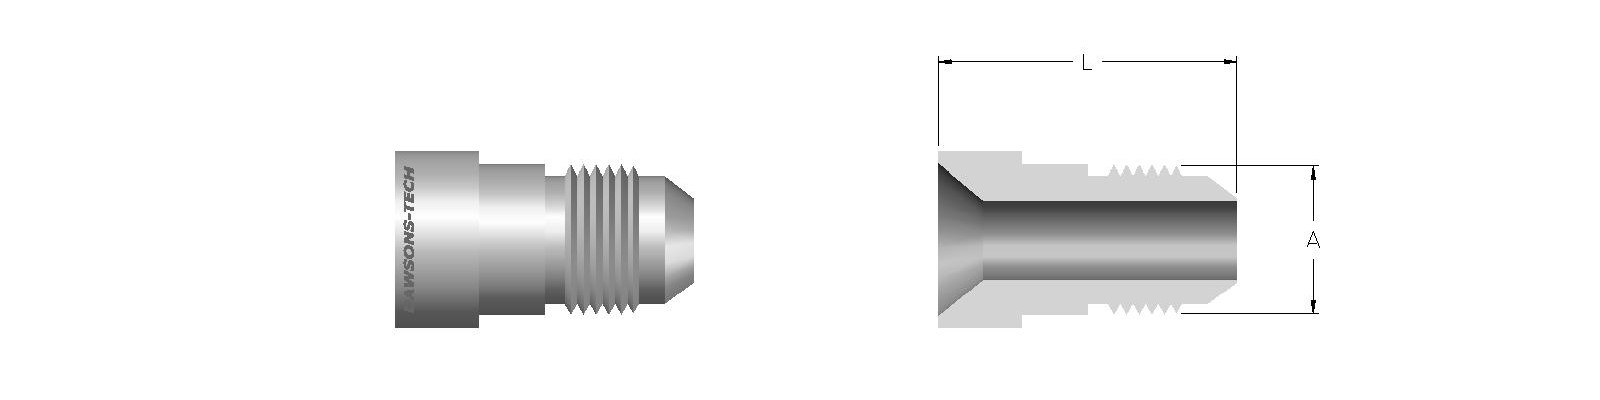 07 Reducing Adapter (Flare Tube End to Reduce Size)